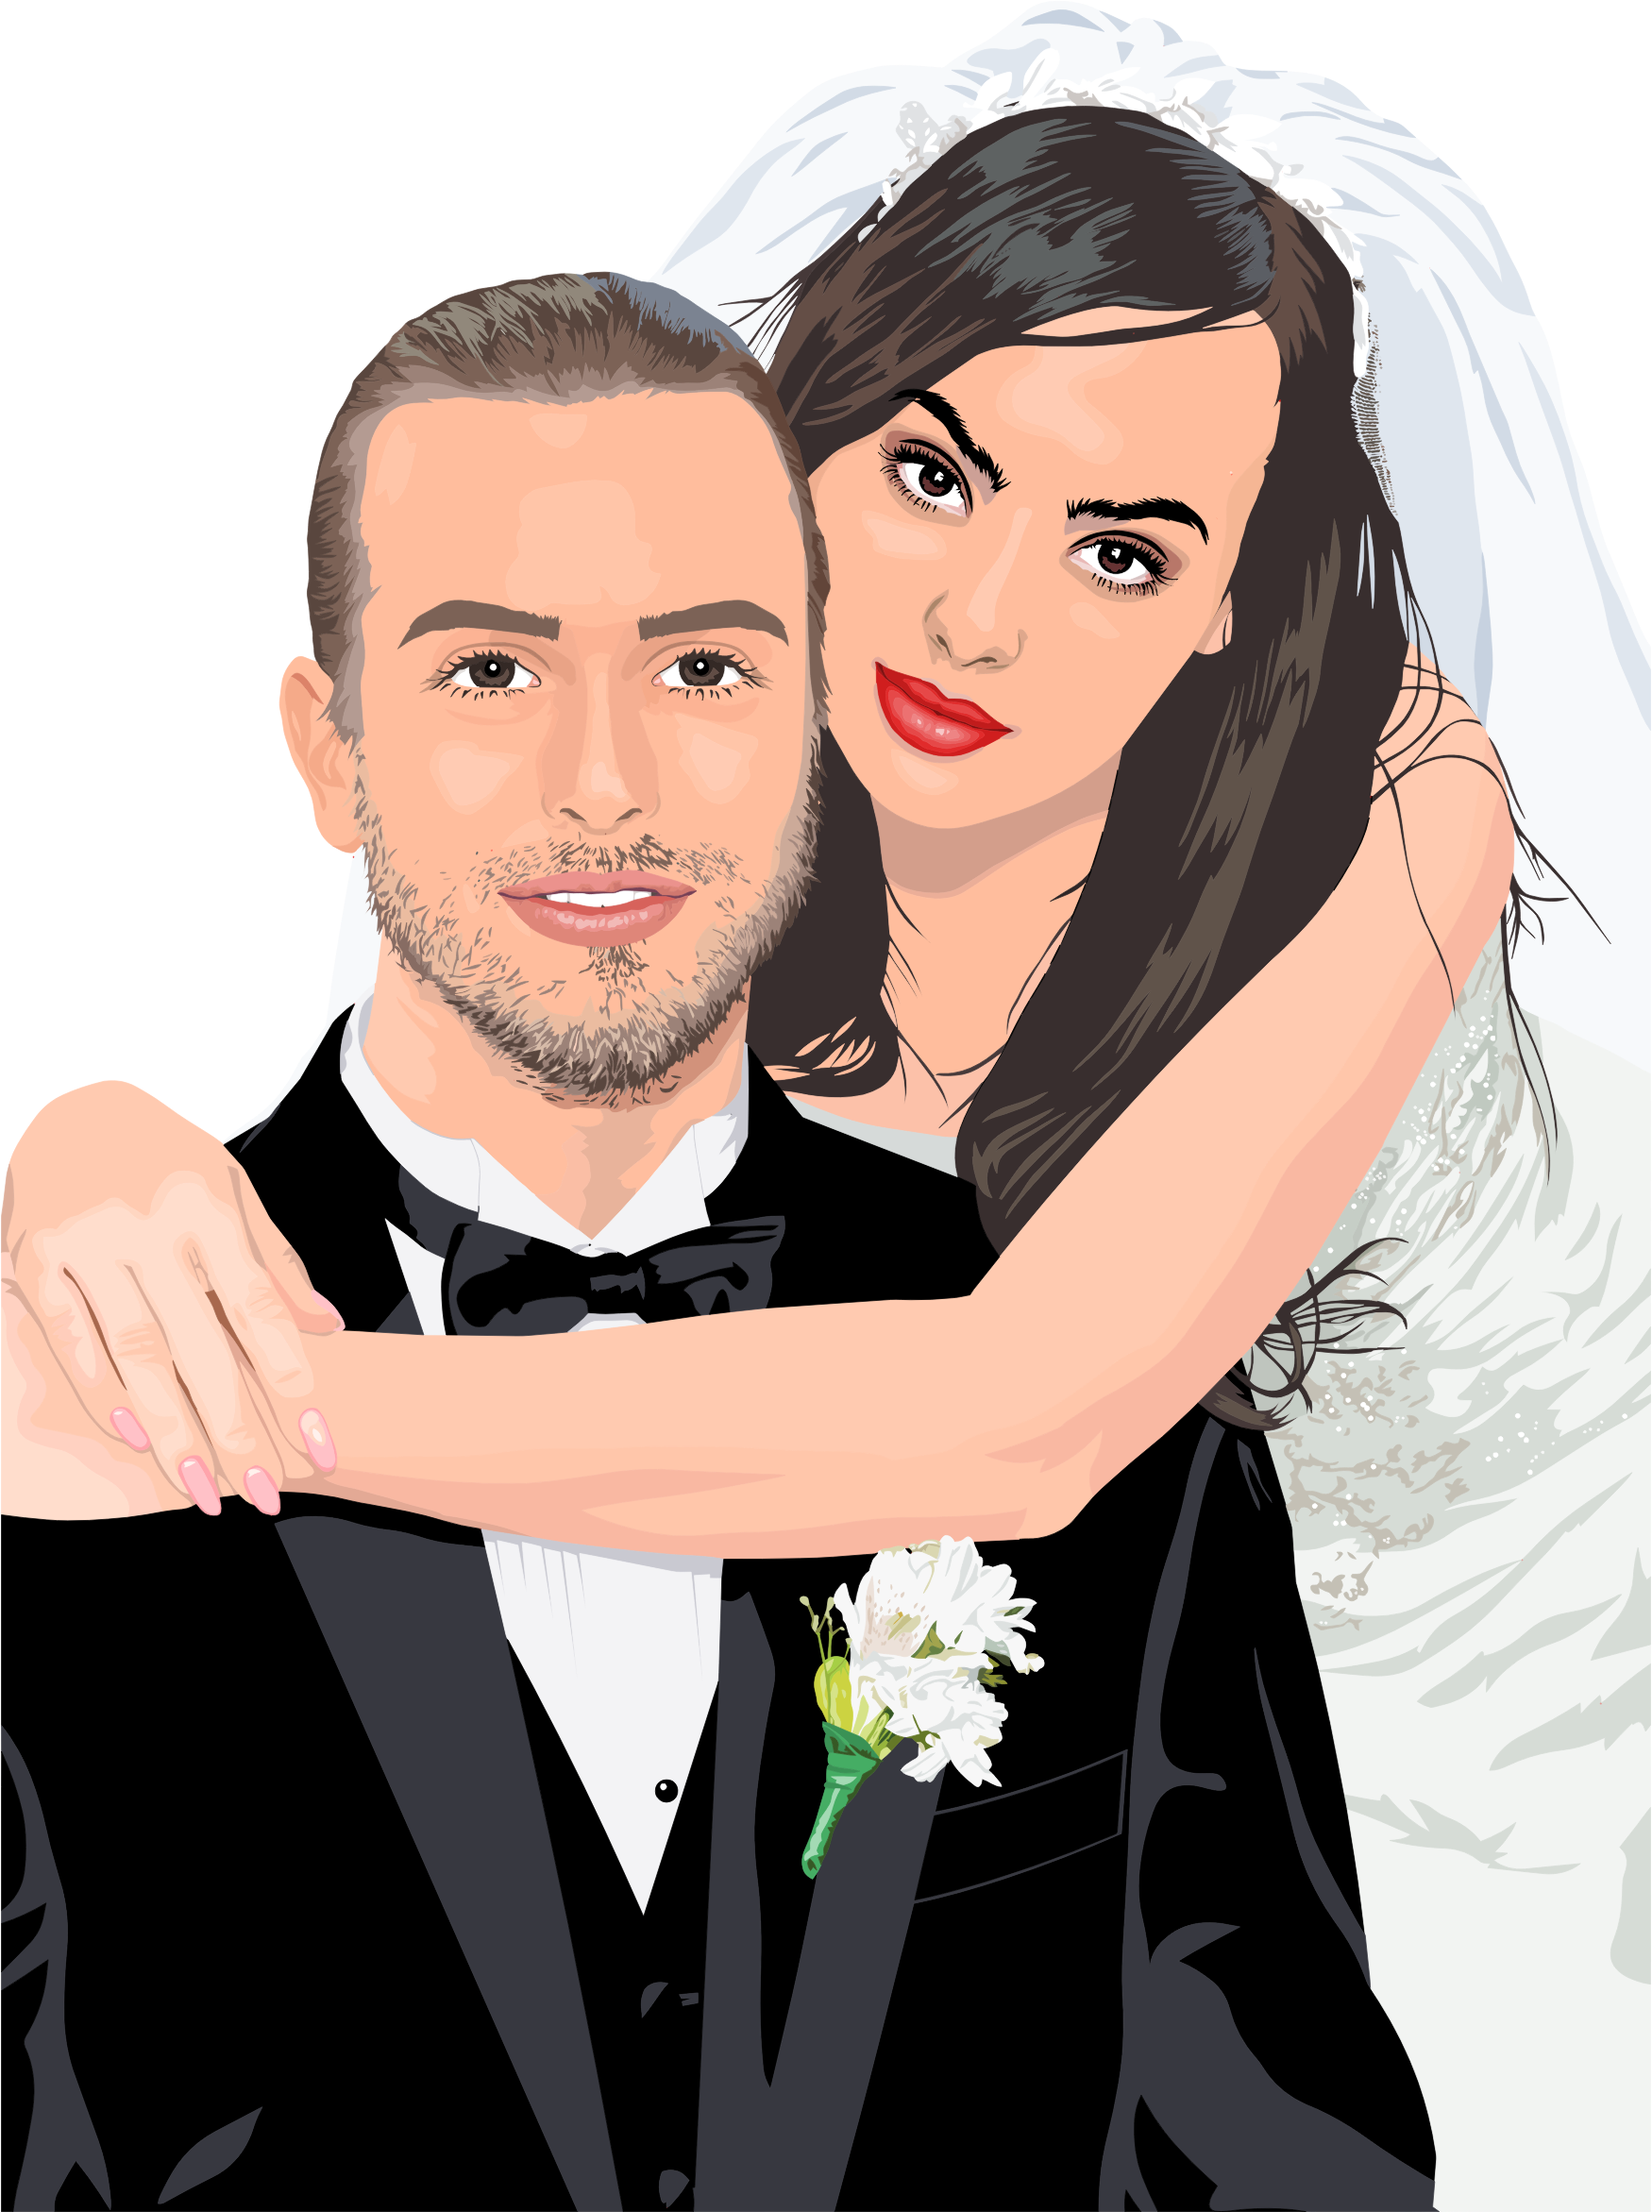 Bride And Groom Wedding Portrait By Heblo by GDJ